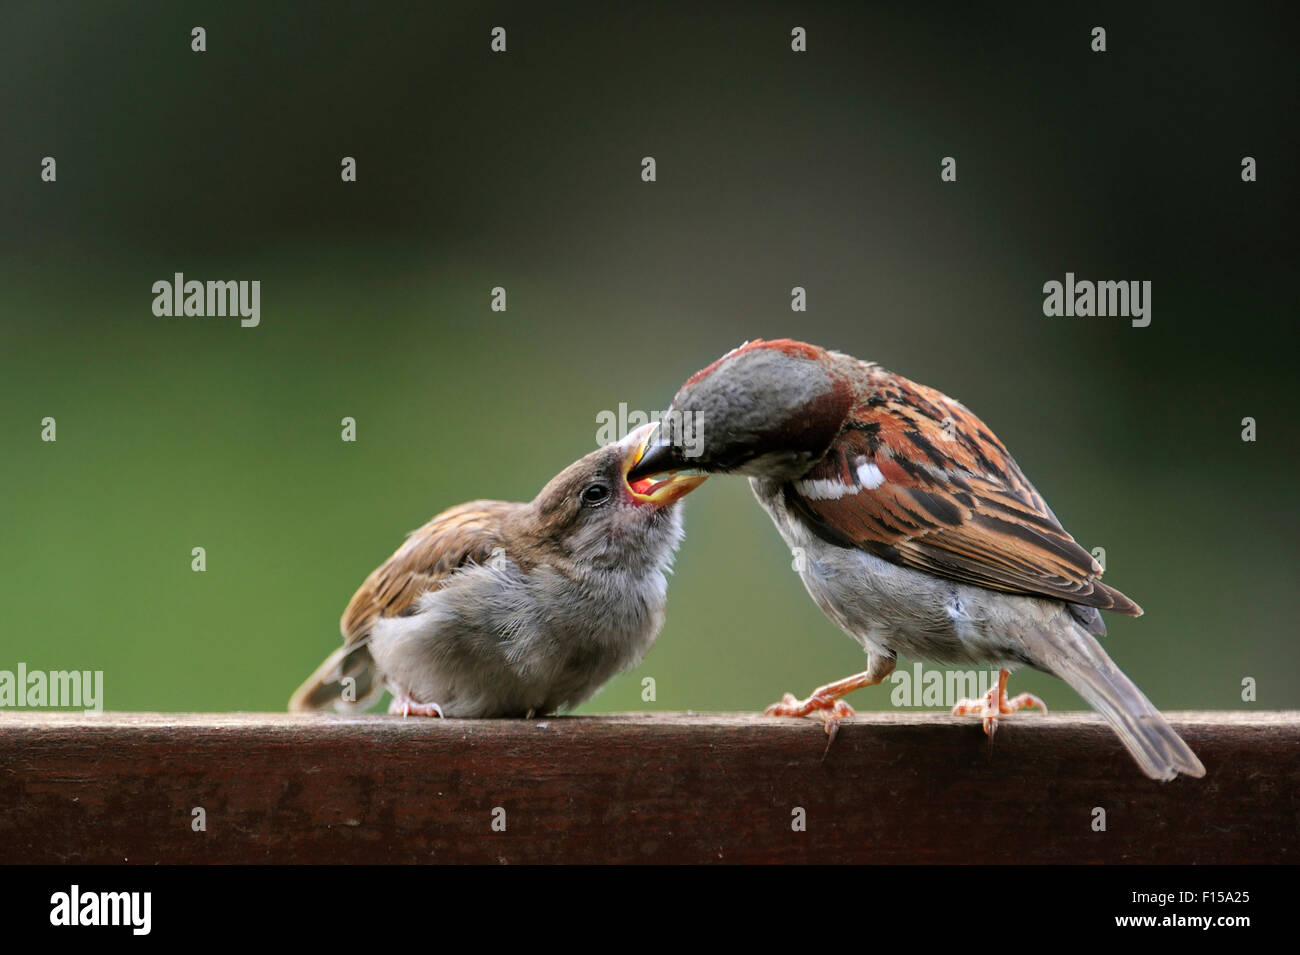 Male Common sparrow / House sparrow (Passer domesticus) feeding juvenile on garden fence in summer Stock Photo